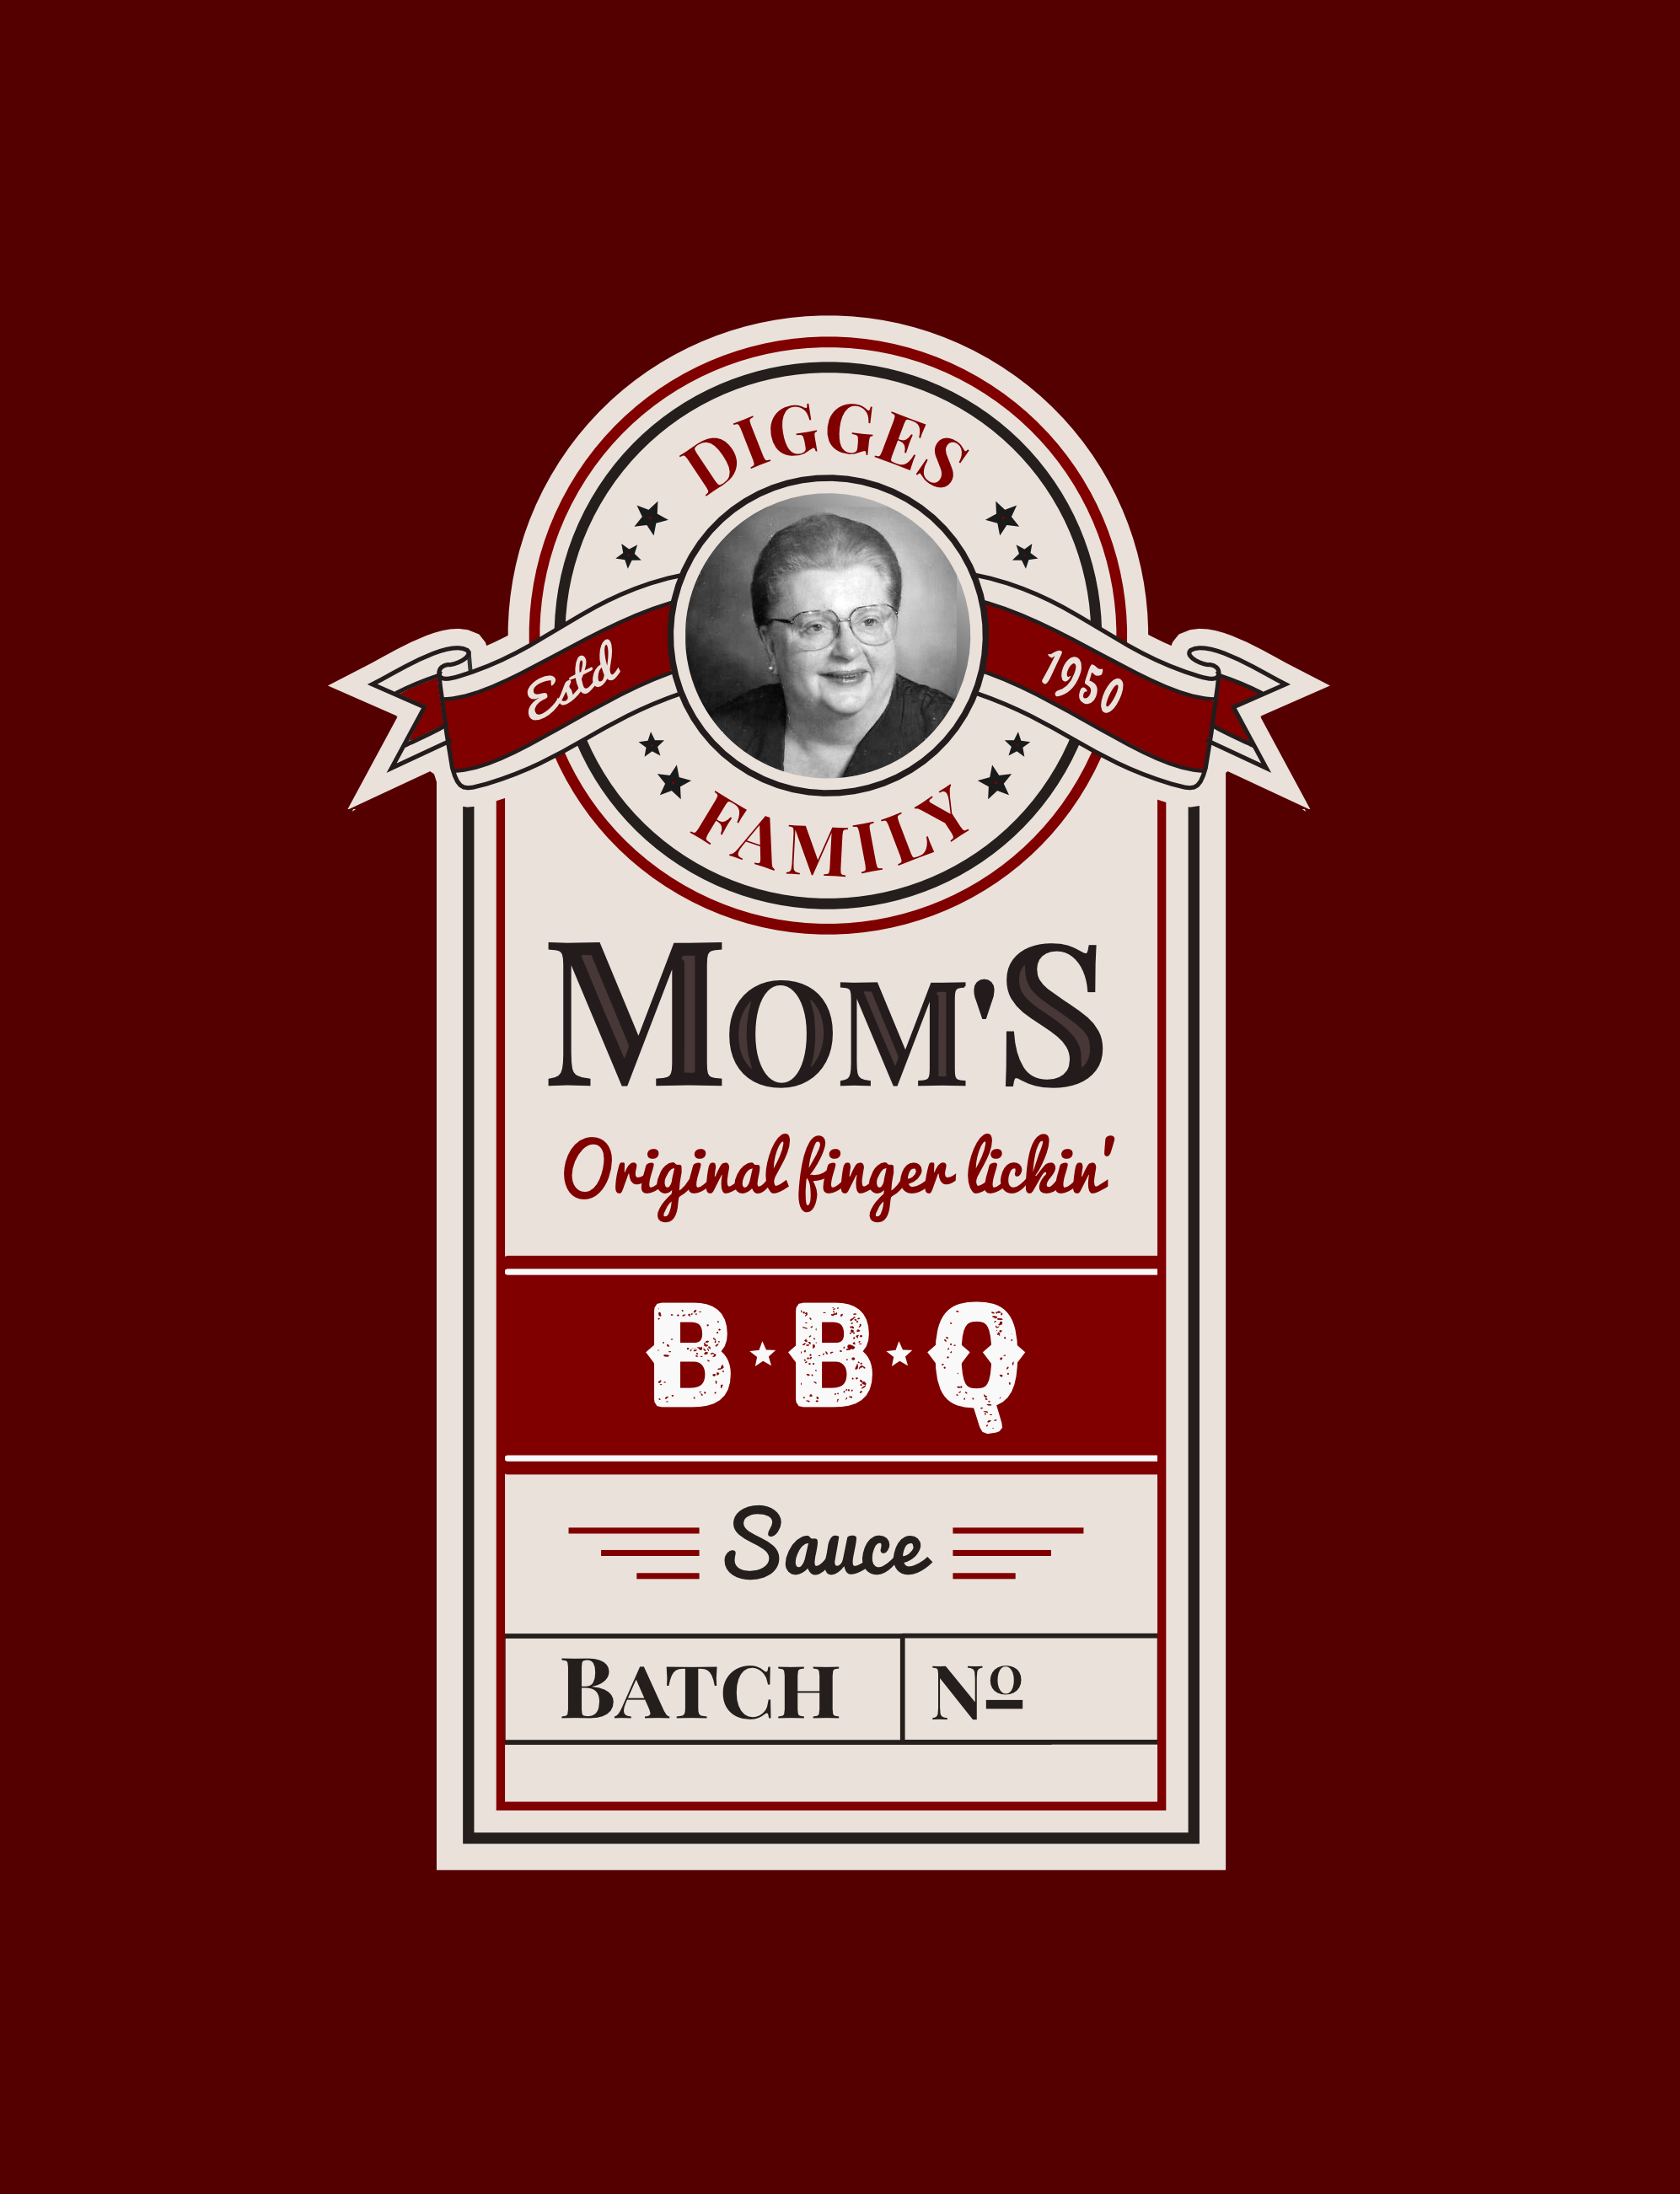 Please Do My Mom's Sauce Justice!